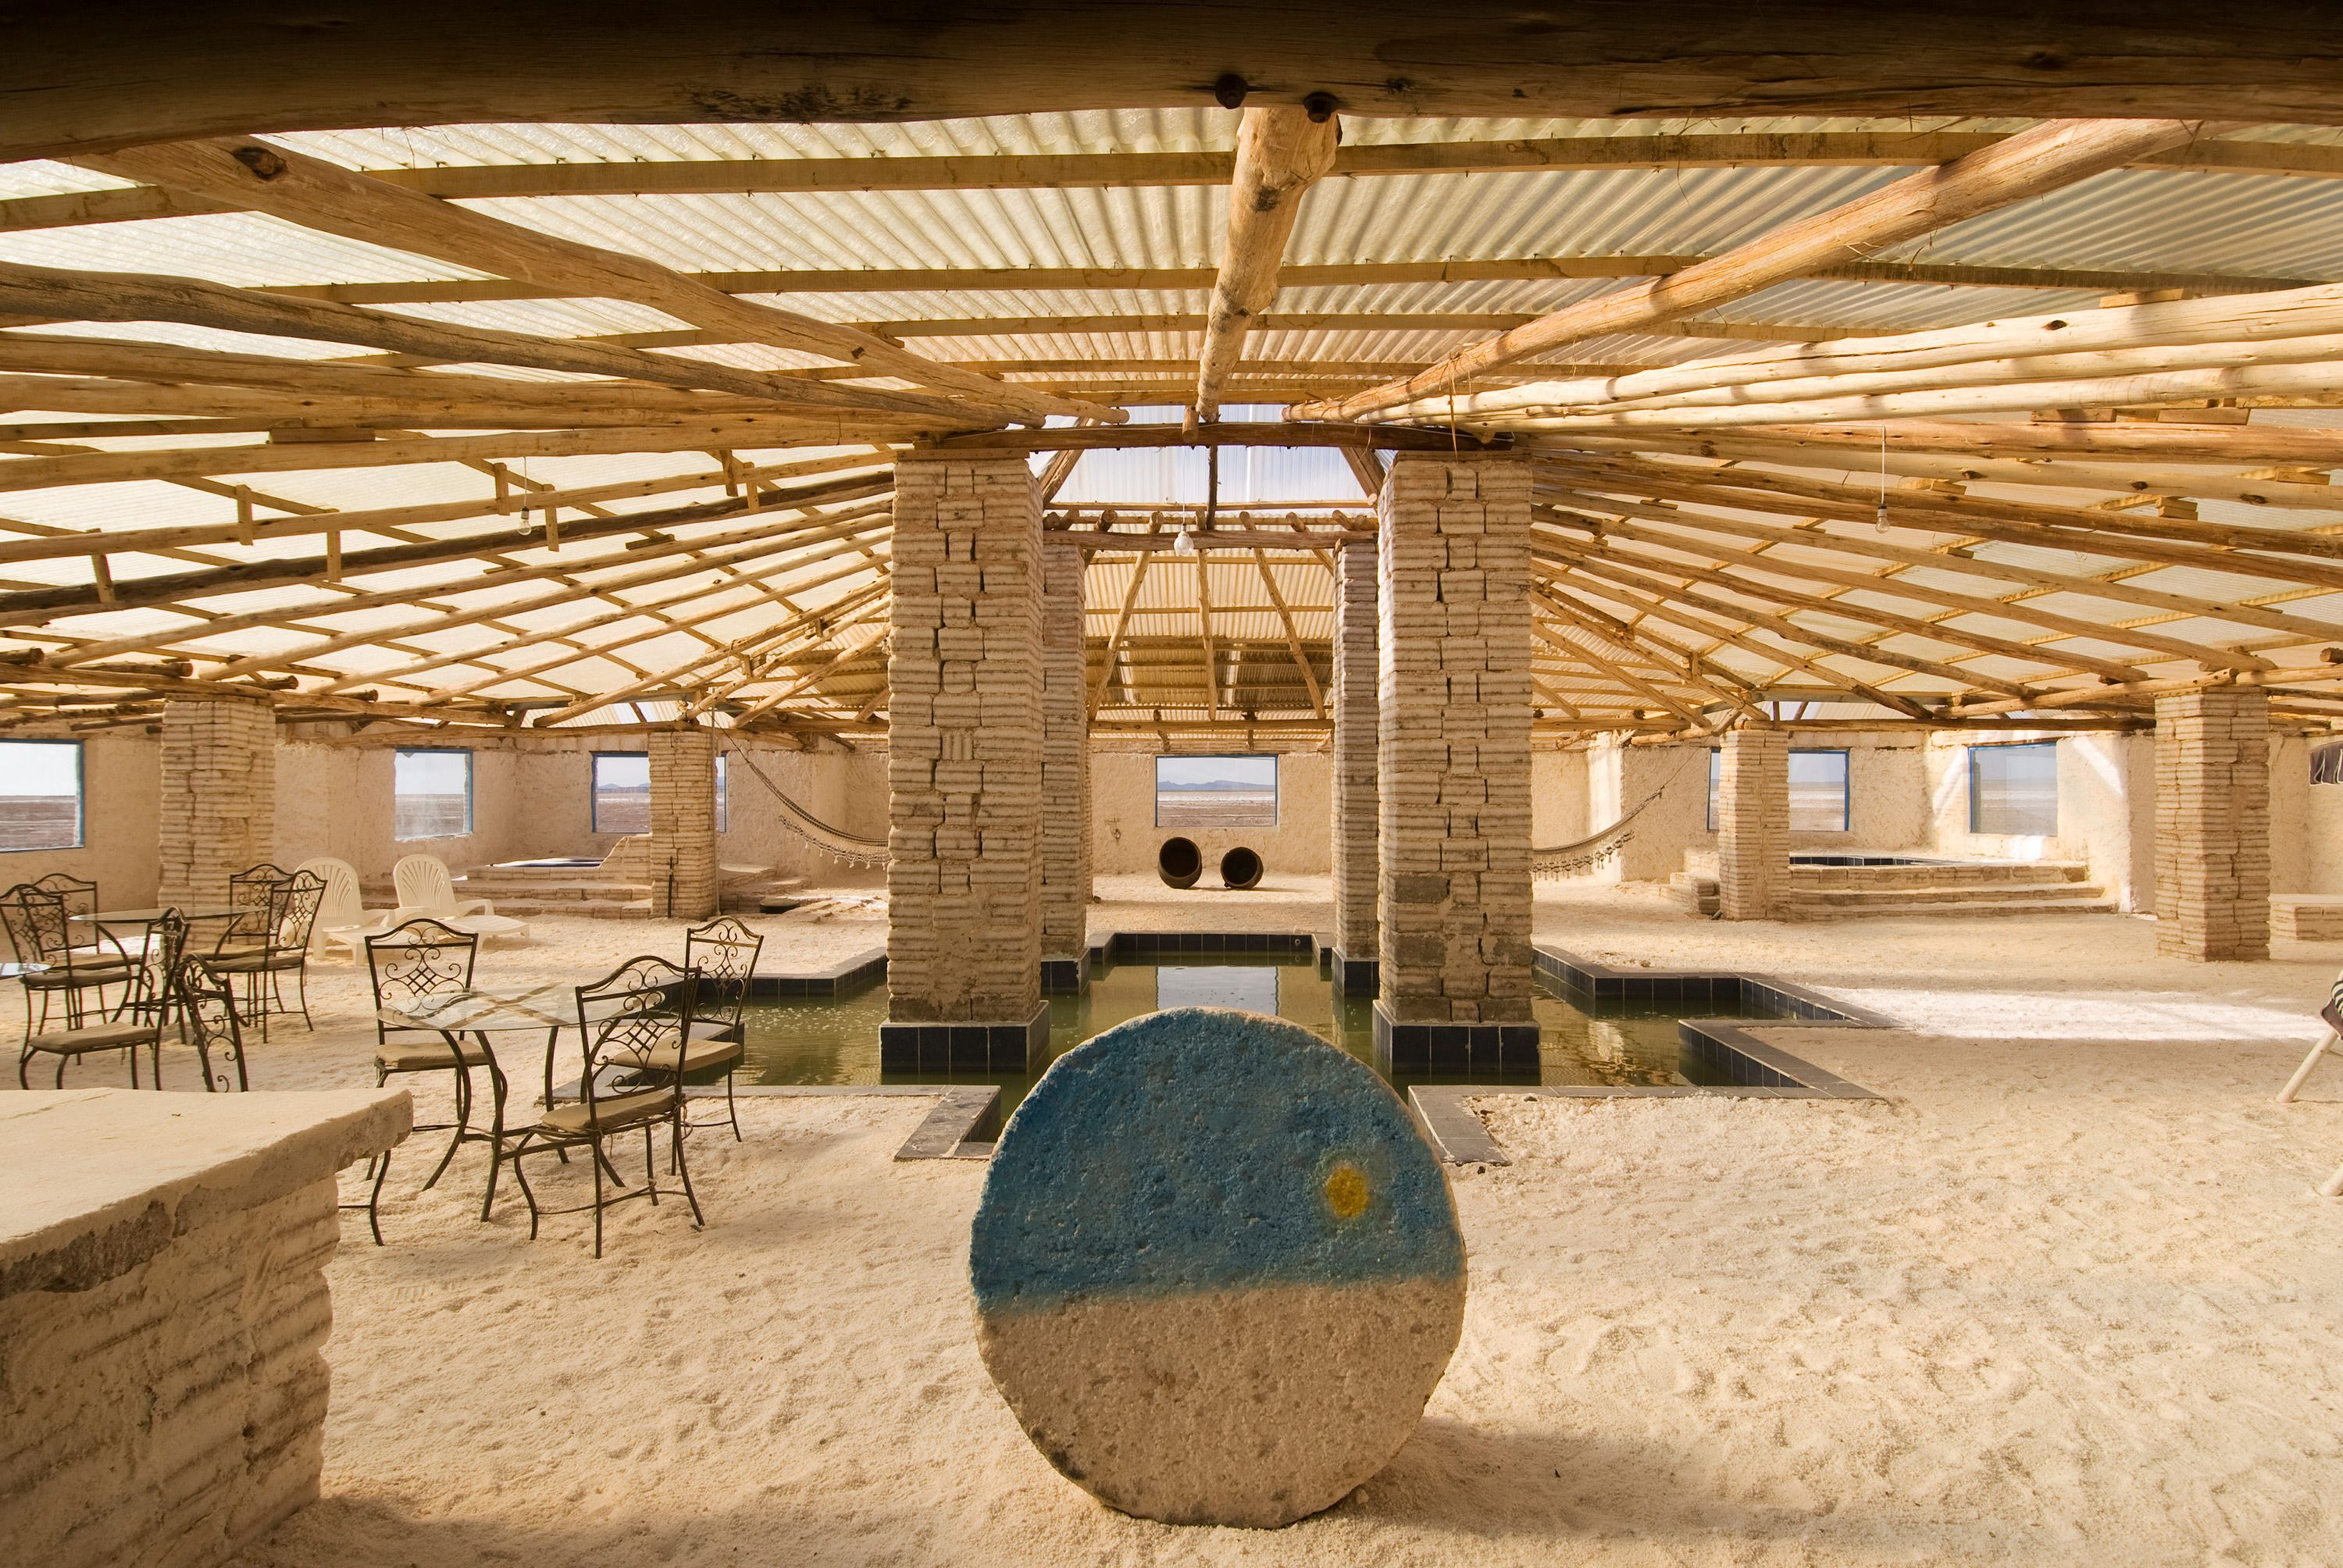 10 Of The World S Most Unusual Hotels Unusual Hotels